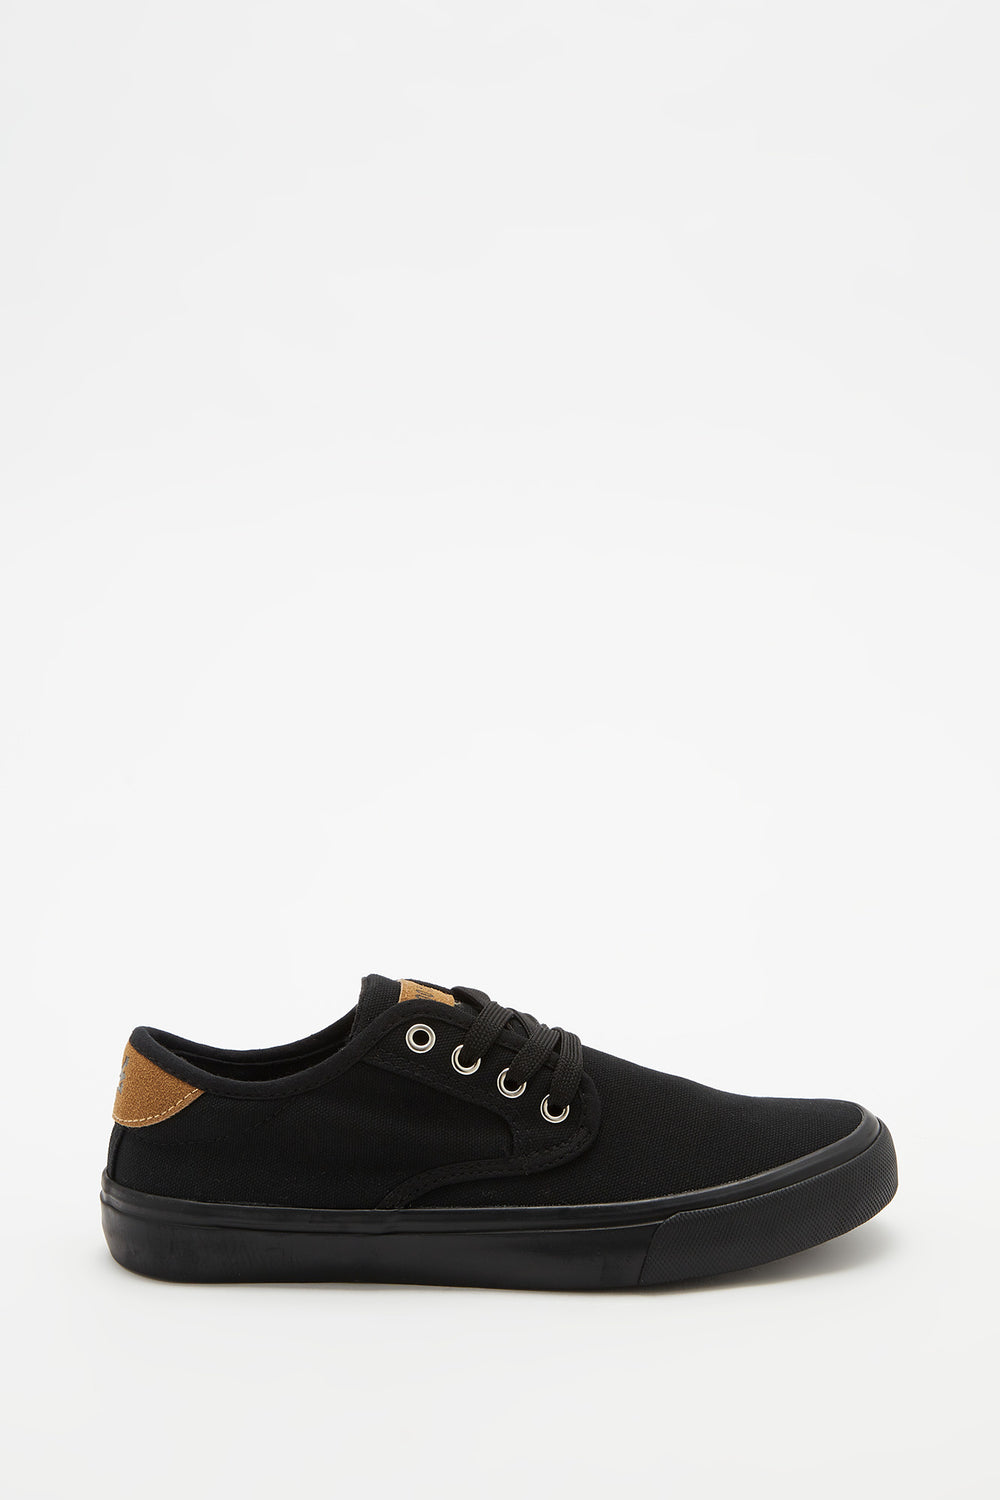 Zoo York Boys Canvas Skate Shoes Black